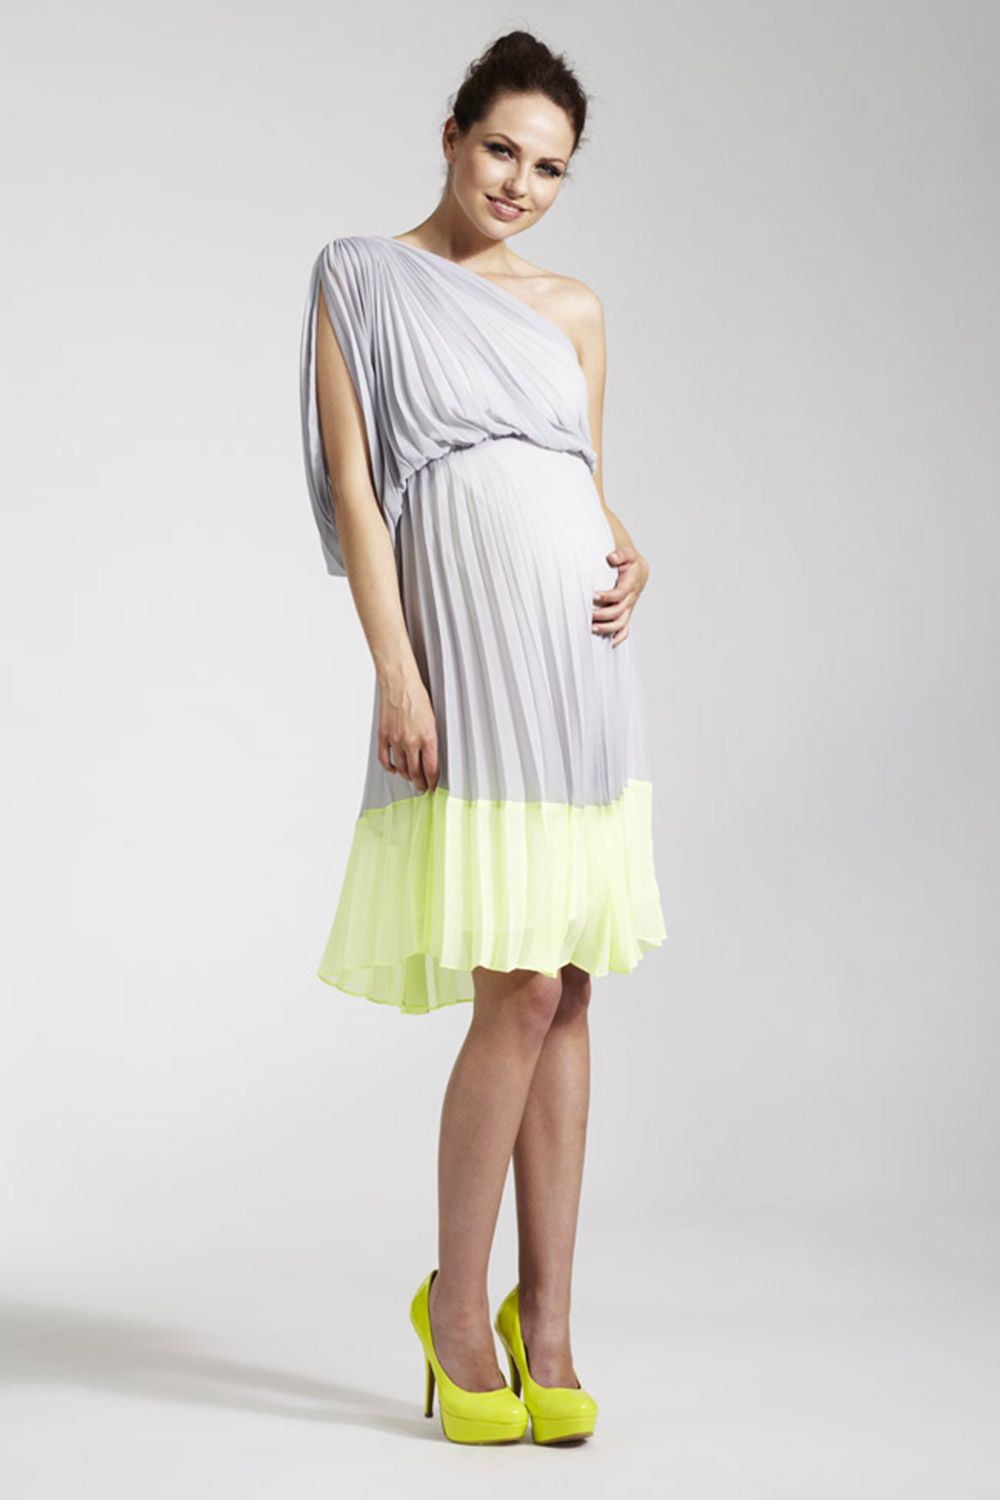 The Best Maternity Wedding Guest Dresses | Pinterest | Maternity ...